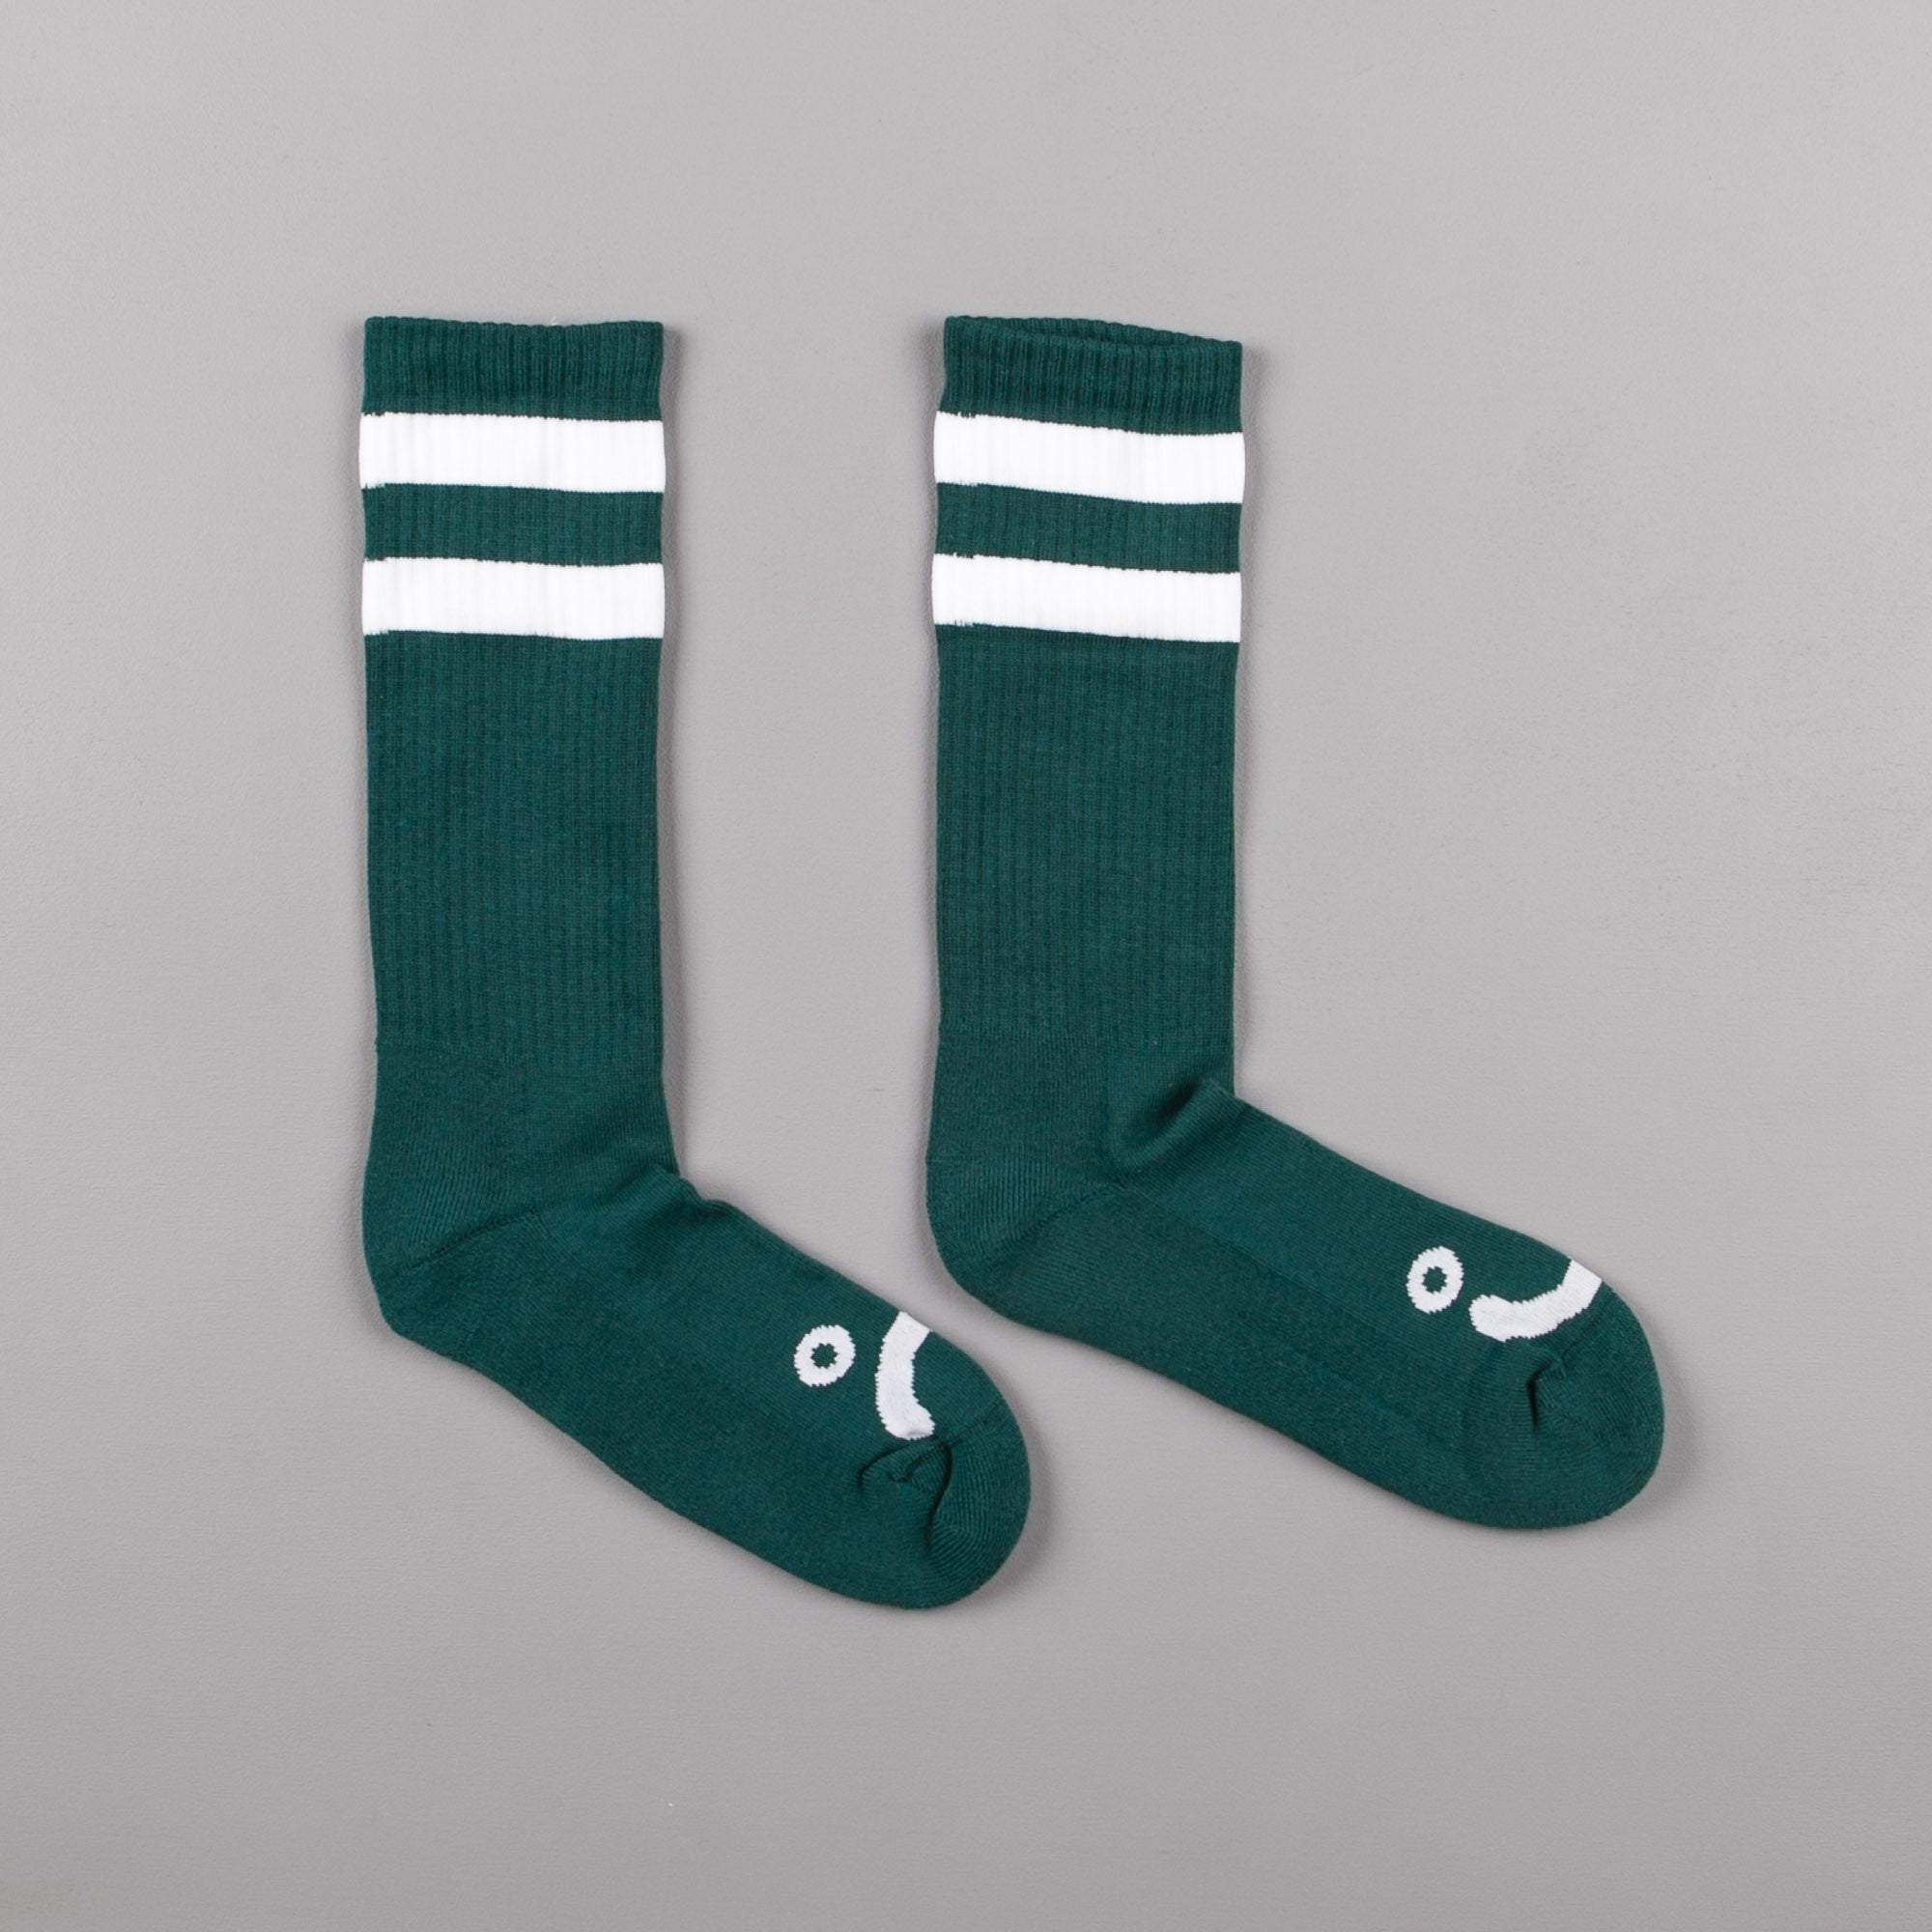 Polar Happy Sad Classic Socks - Dark Green / White